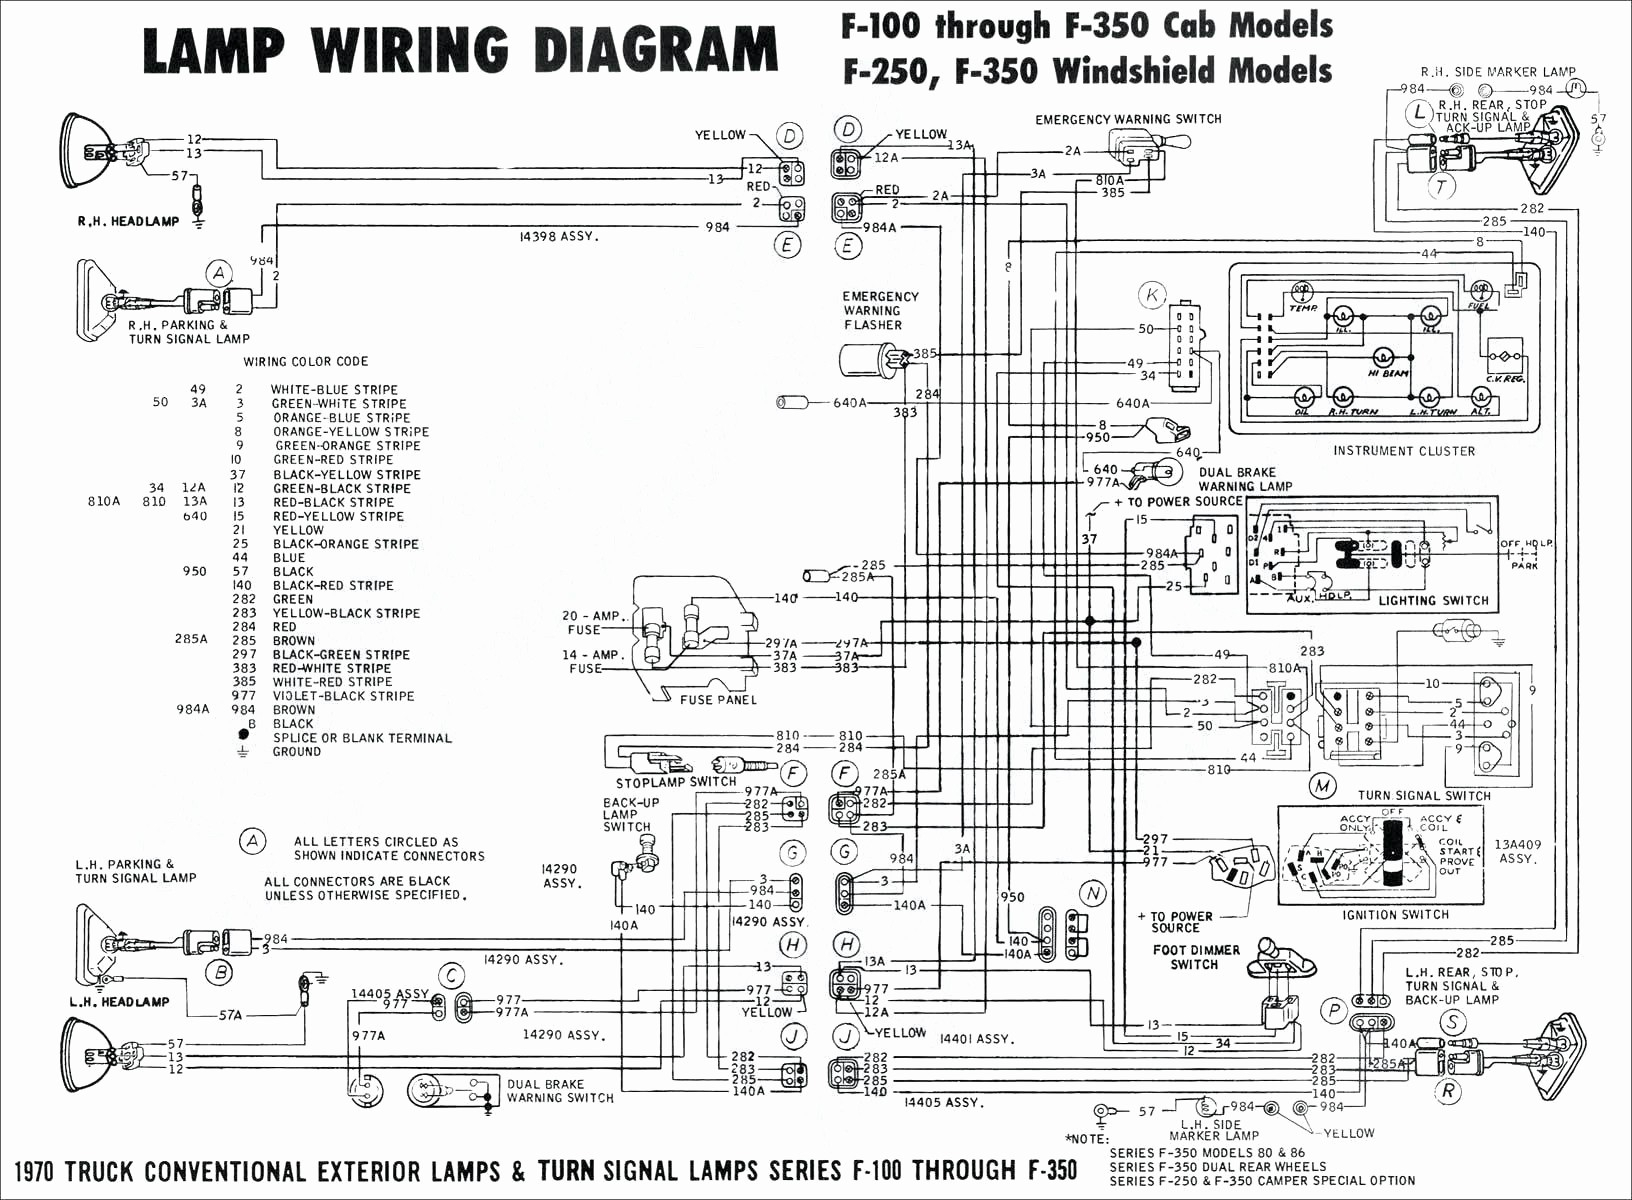 2016 f150 trailer plug diagram diy enthusiasts wiring diagrams u2022 rh okdrywall co